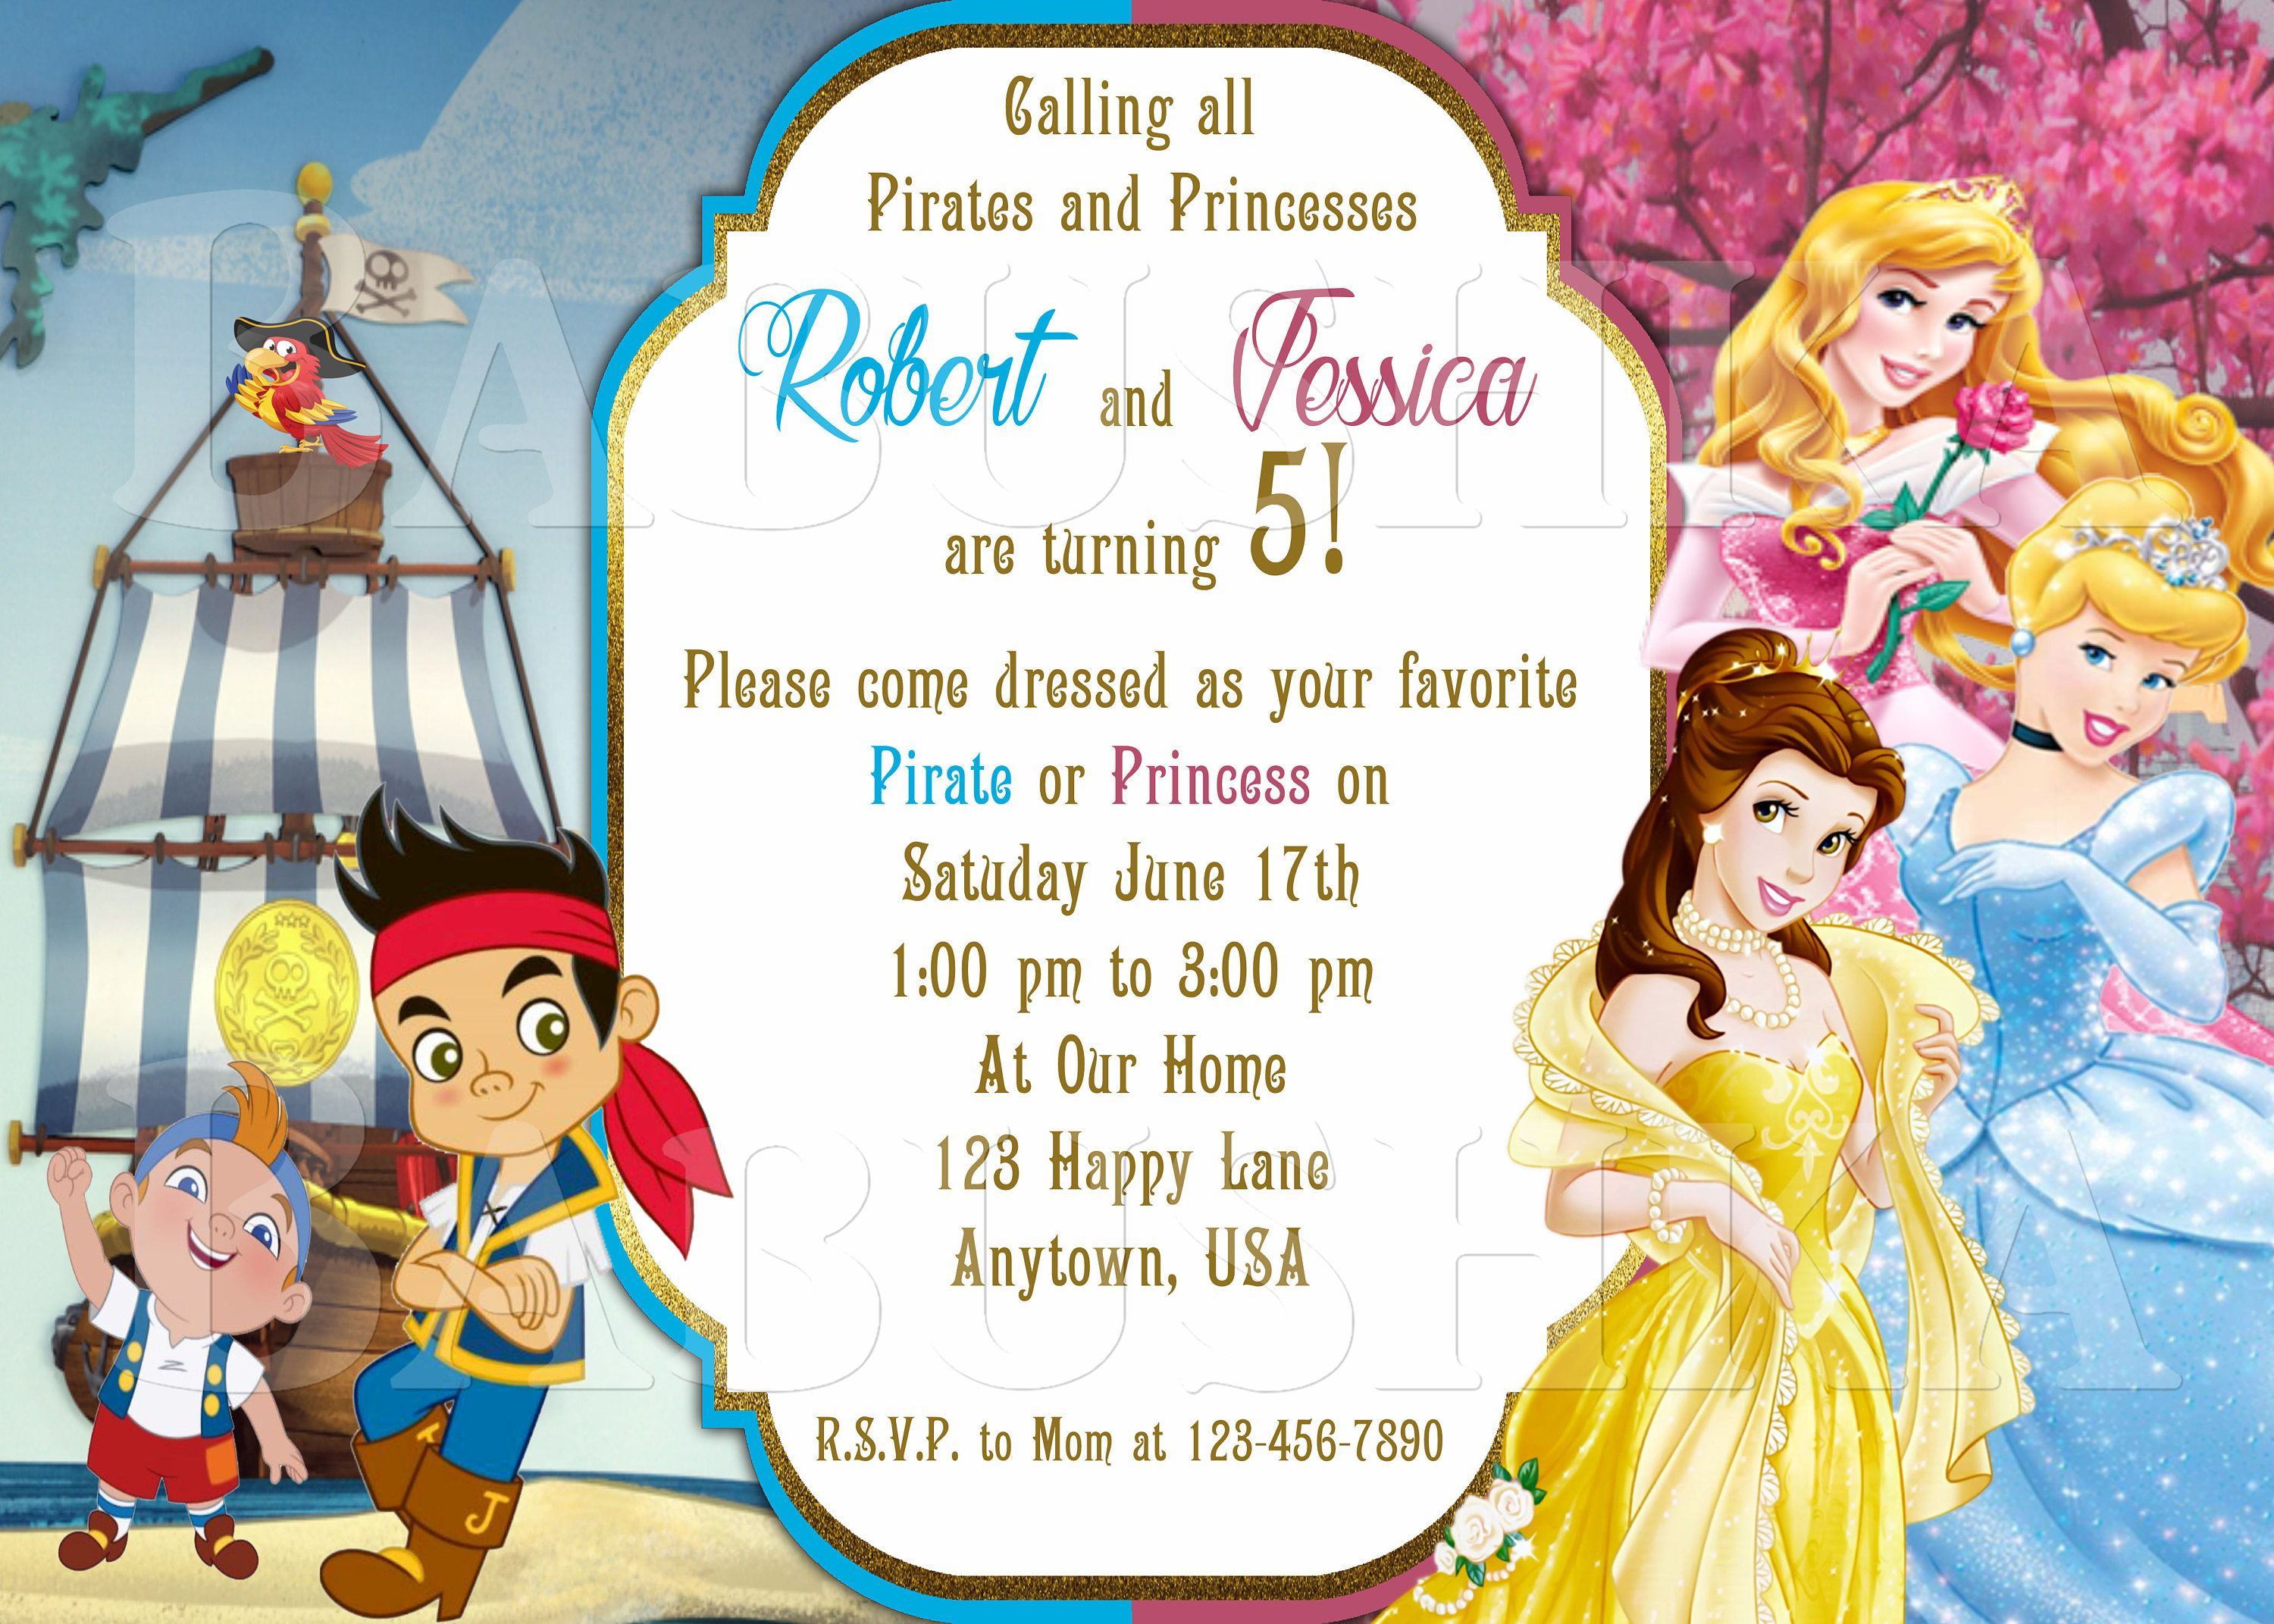 Pirate And Princess Twins Or Double Birthday Party Invitation Jake The Neverland Pirates